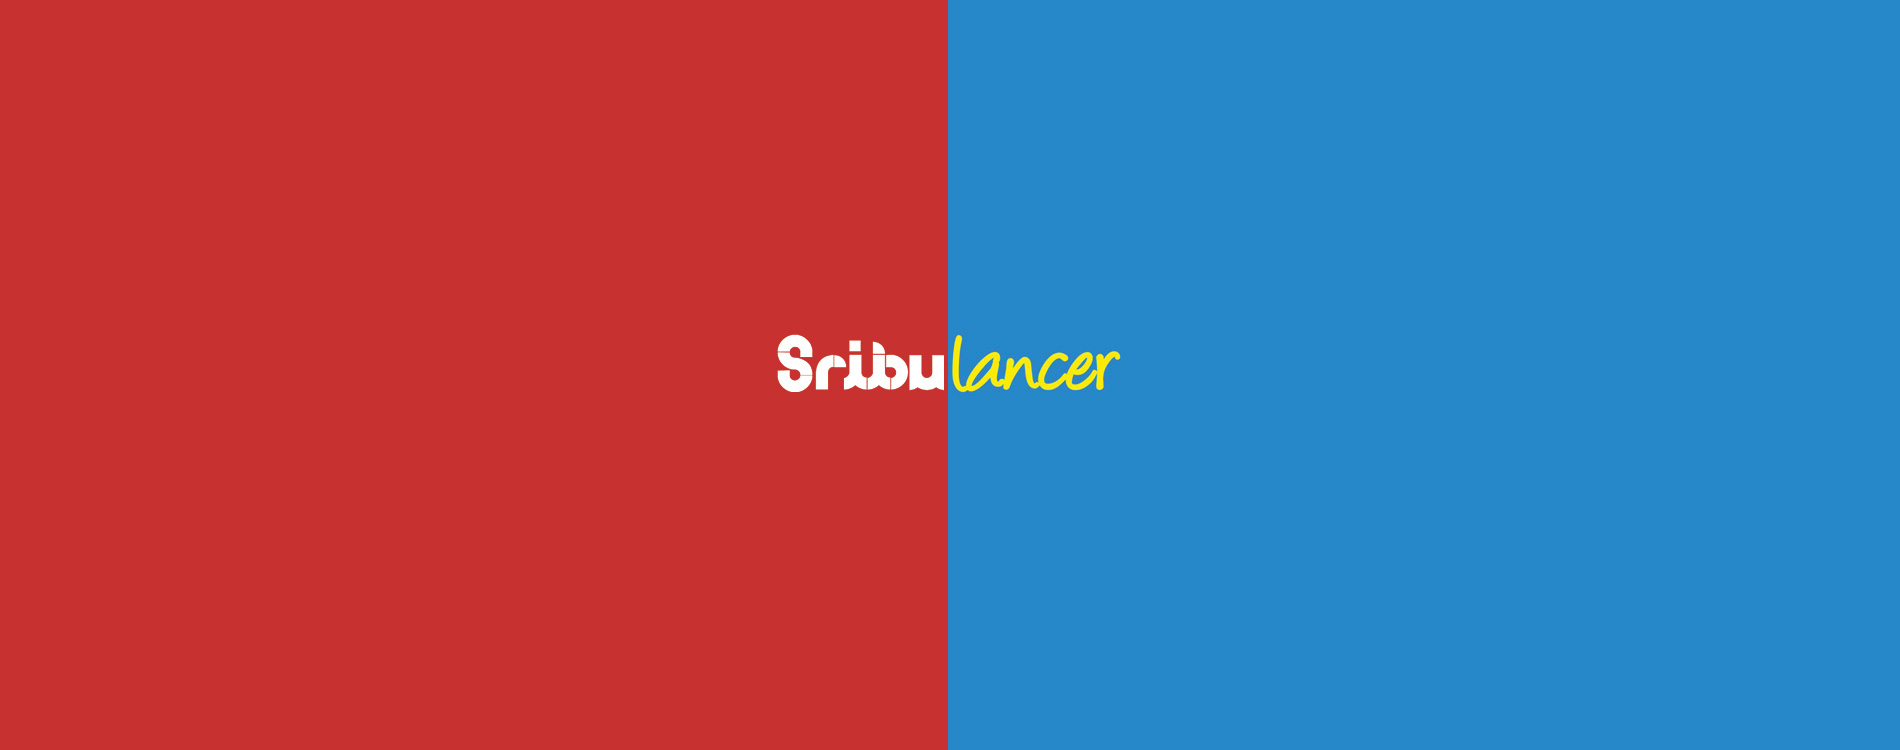 Profile sribu cover